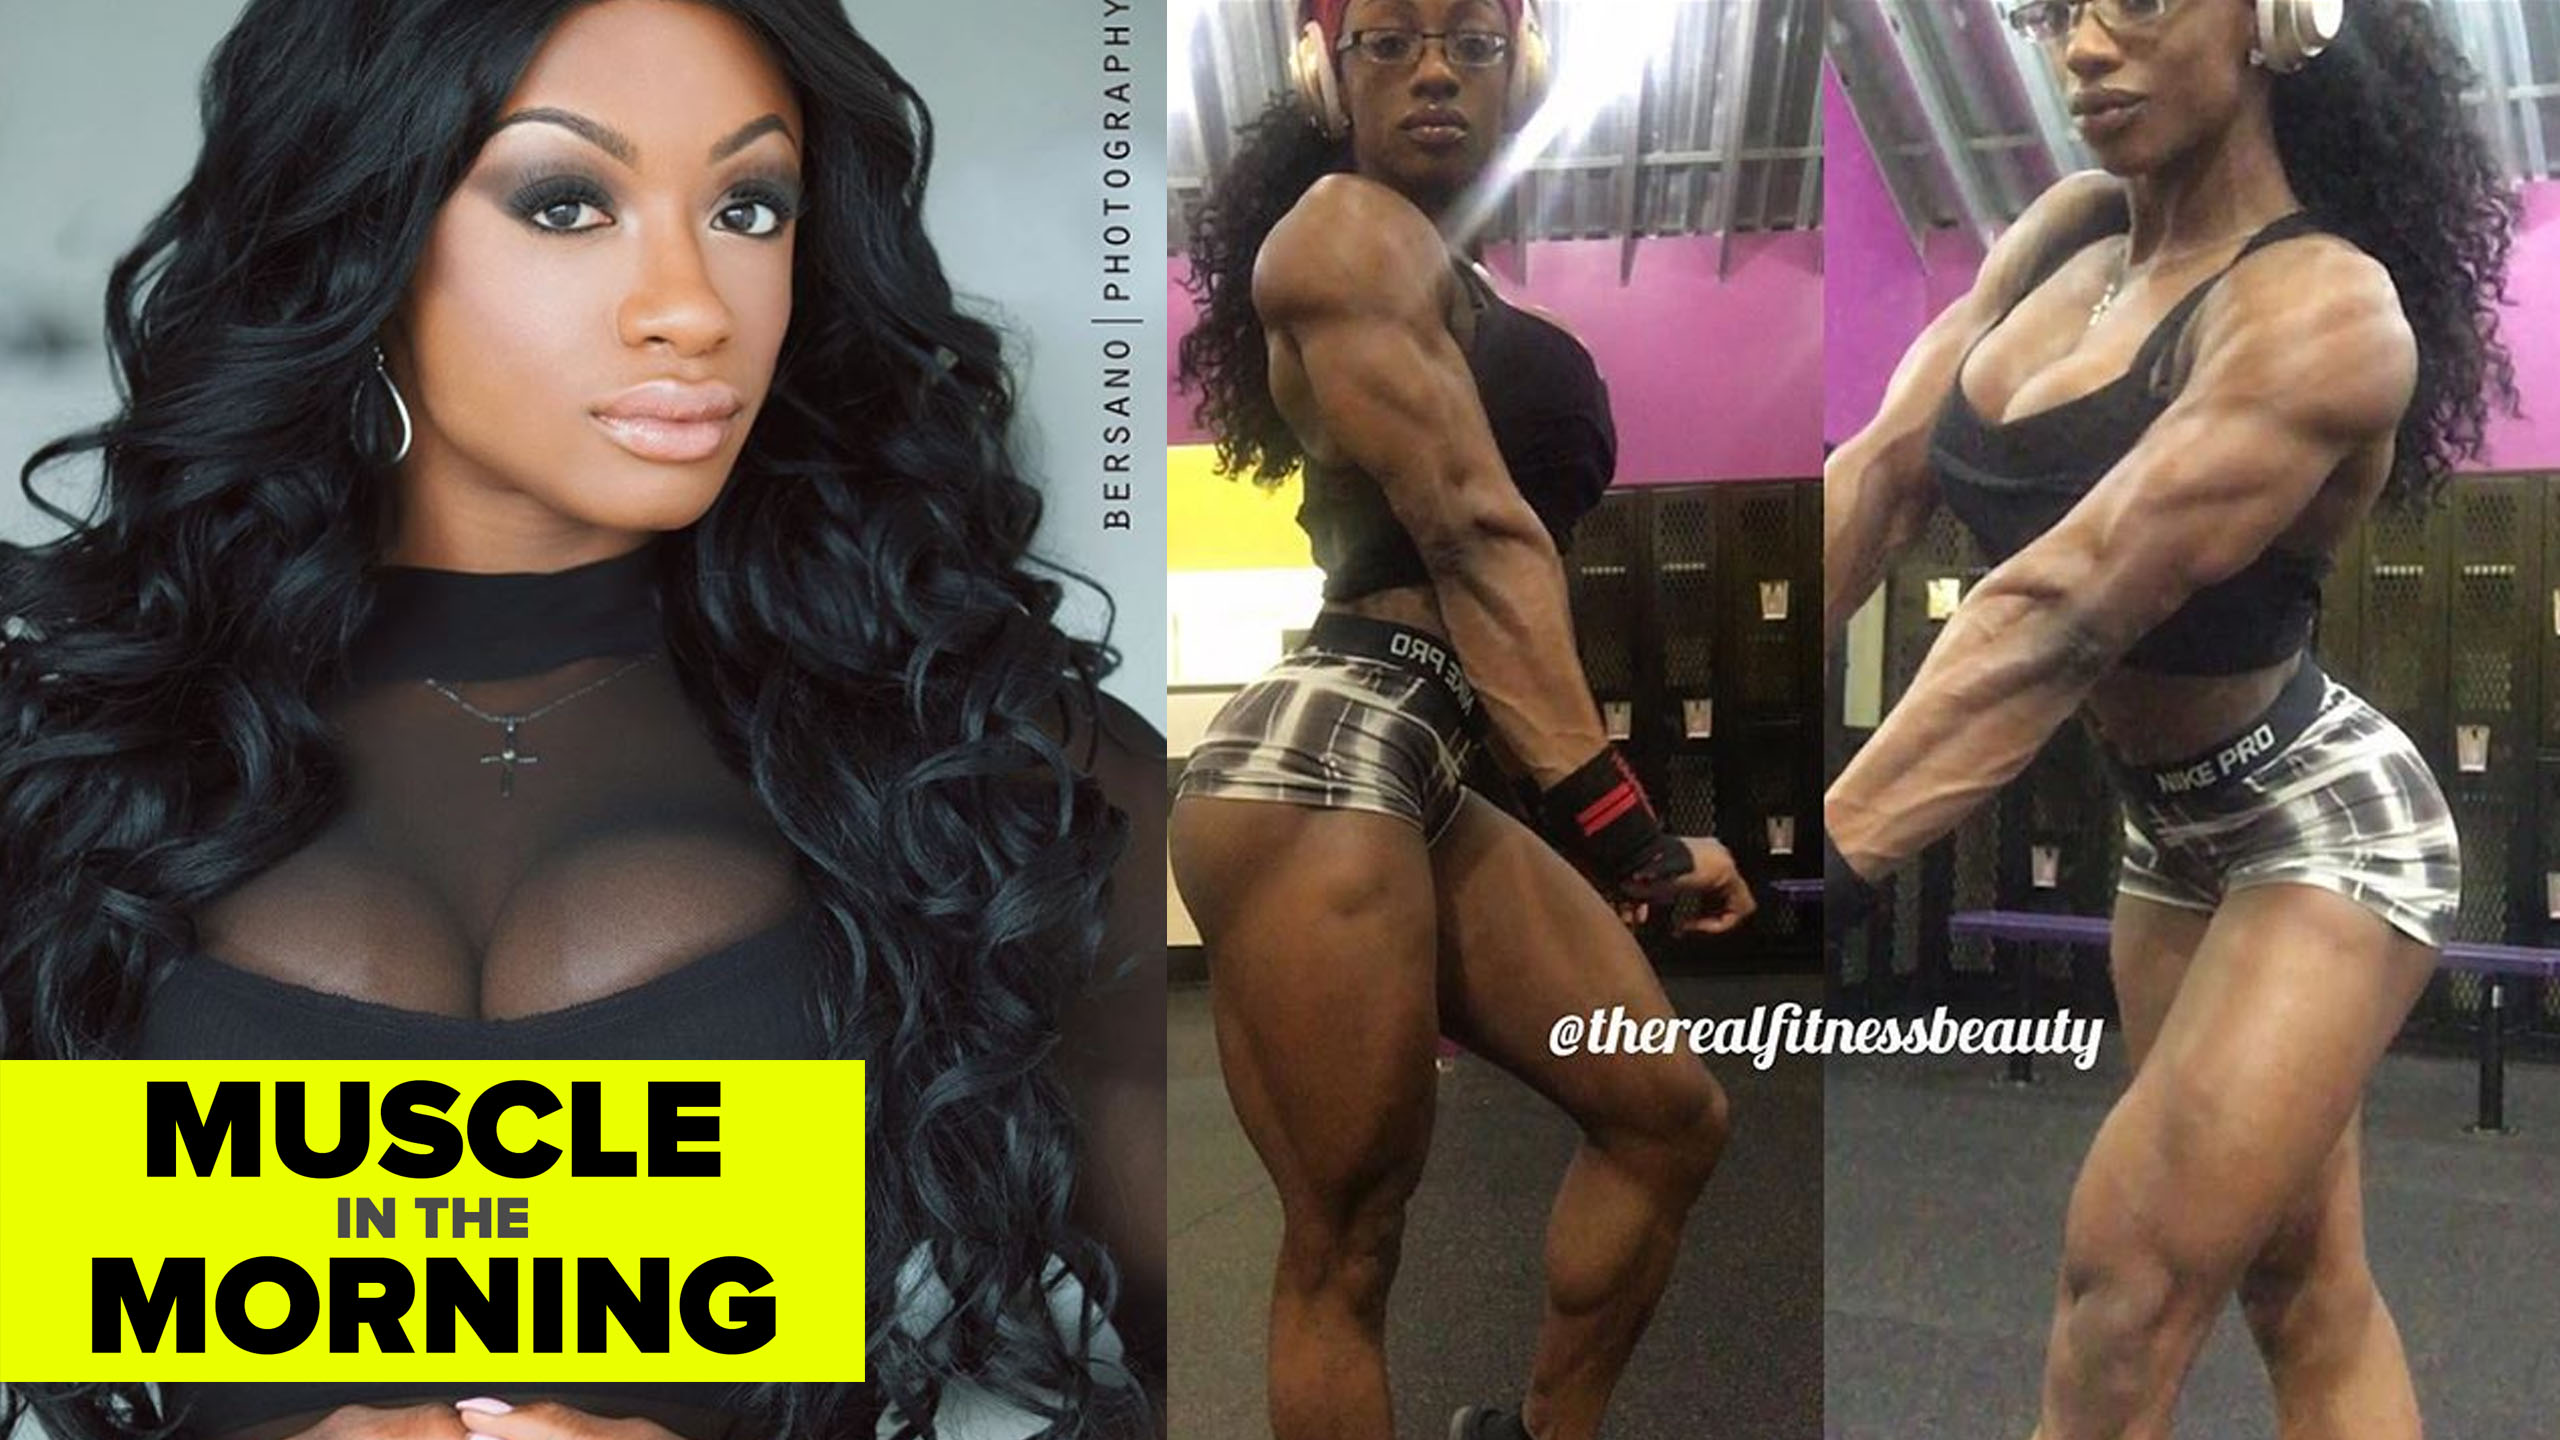 shanique grant 6 weeks out olympia 2018